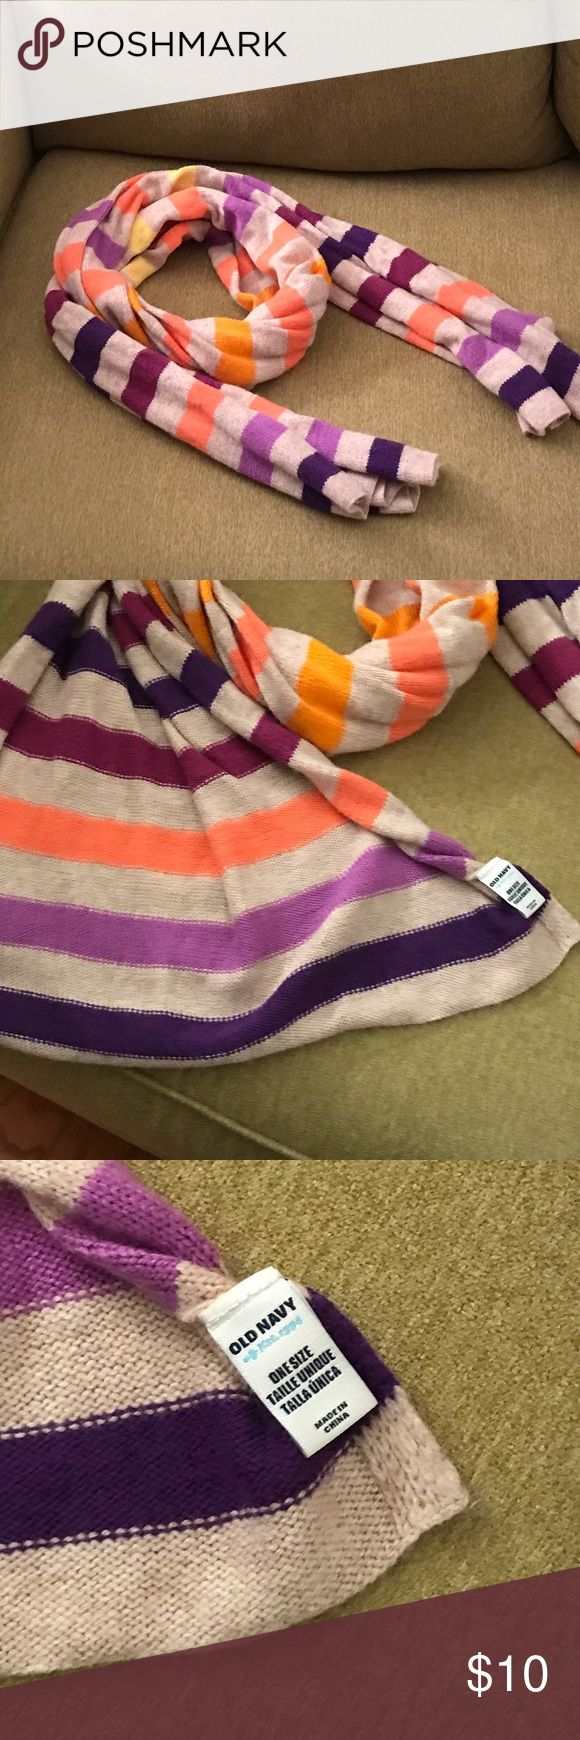 Old Navy Scarf Multiple Colors Stripped Women old Navy Scarf Stripped Multiple colors Accessories Scarves & Wraps